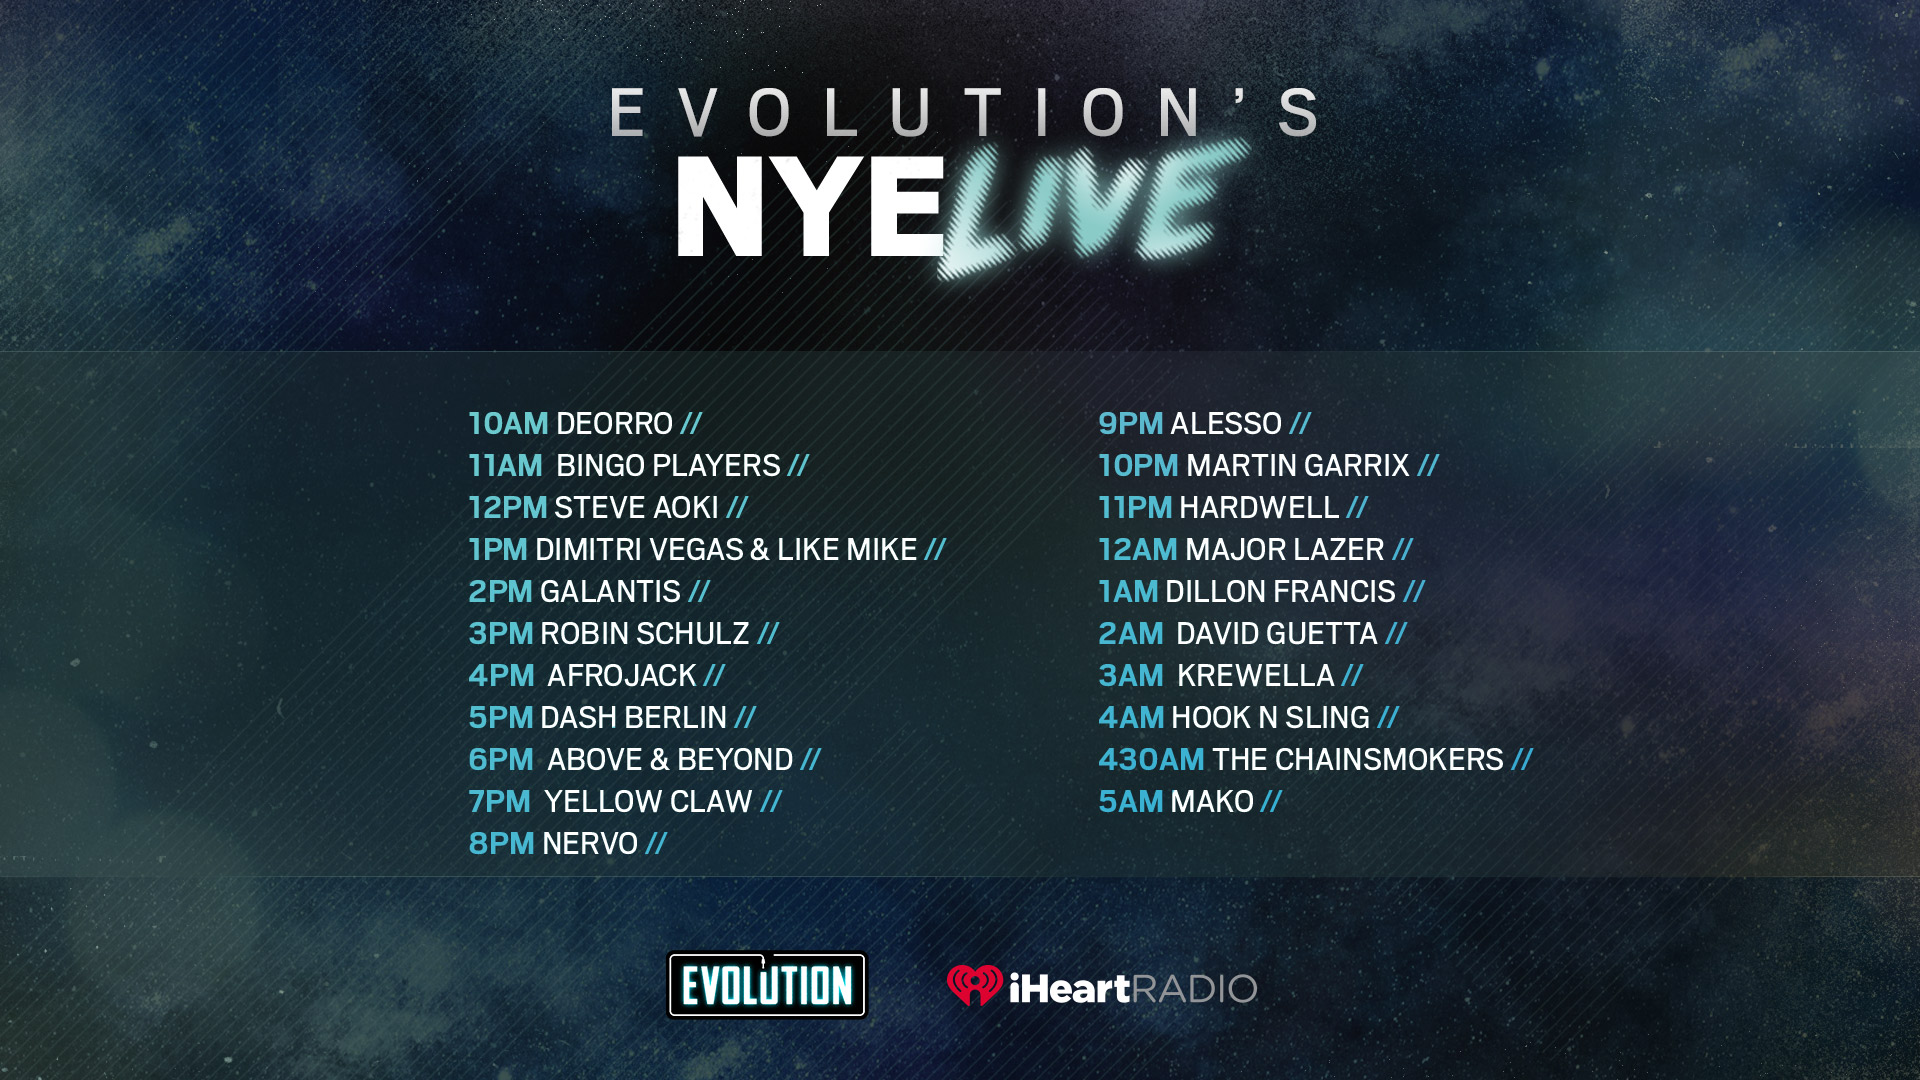 iHeartRadio Will Host 21 Exclusive Mixes For New Year's Eve | Your EDM